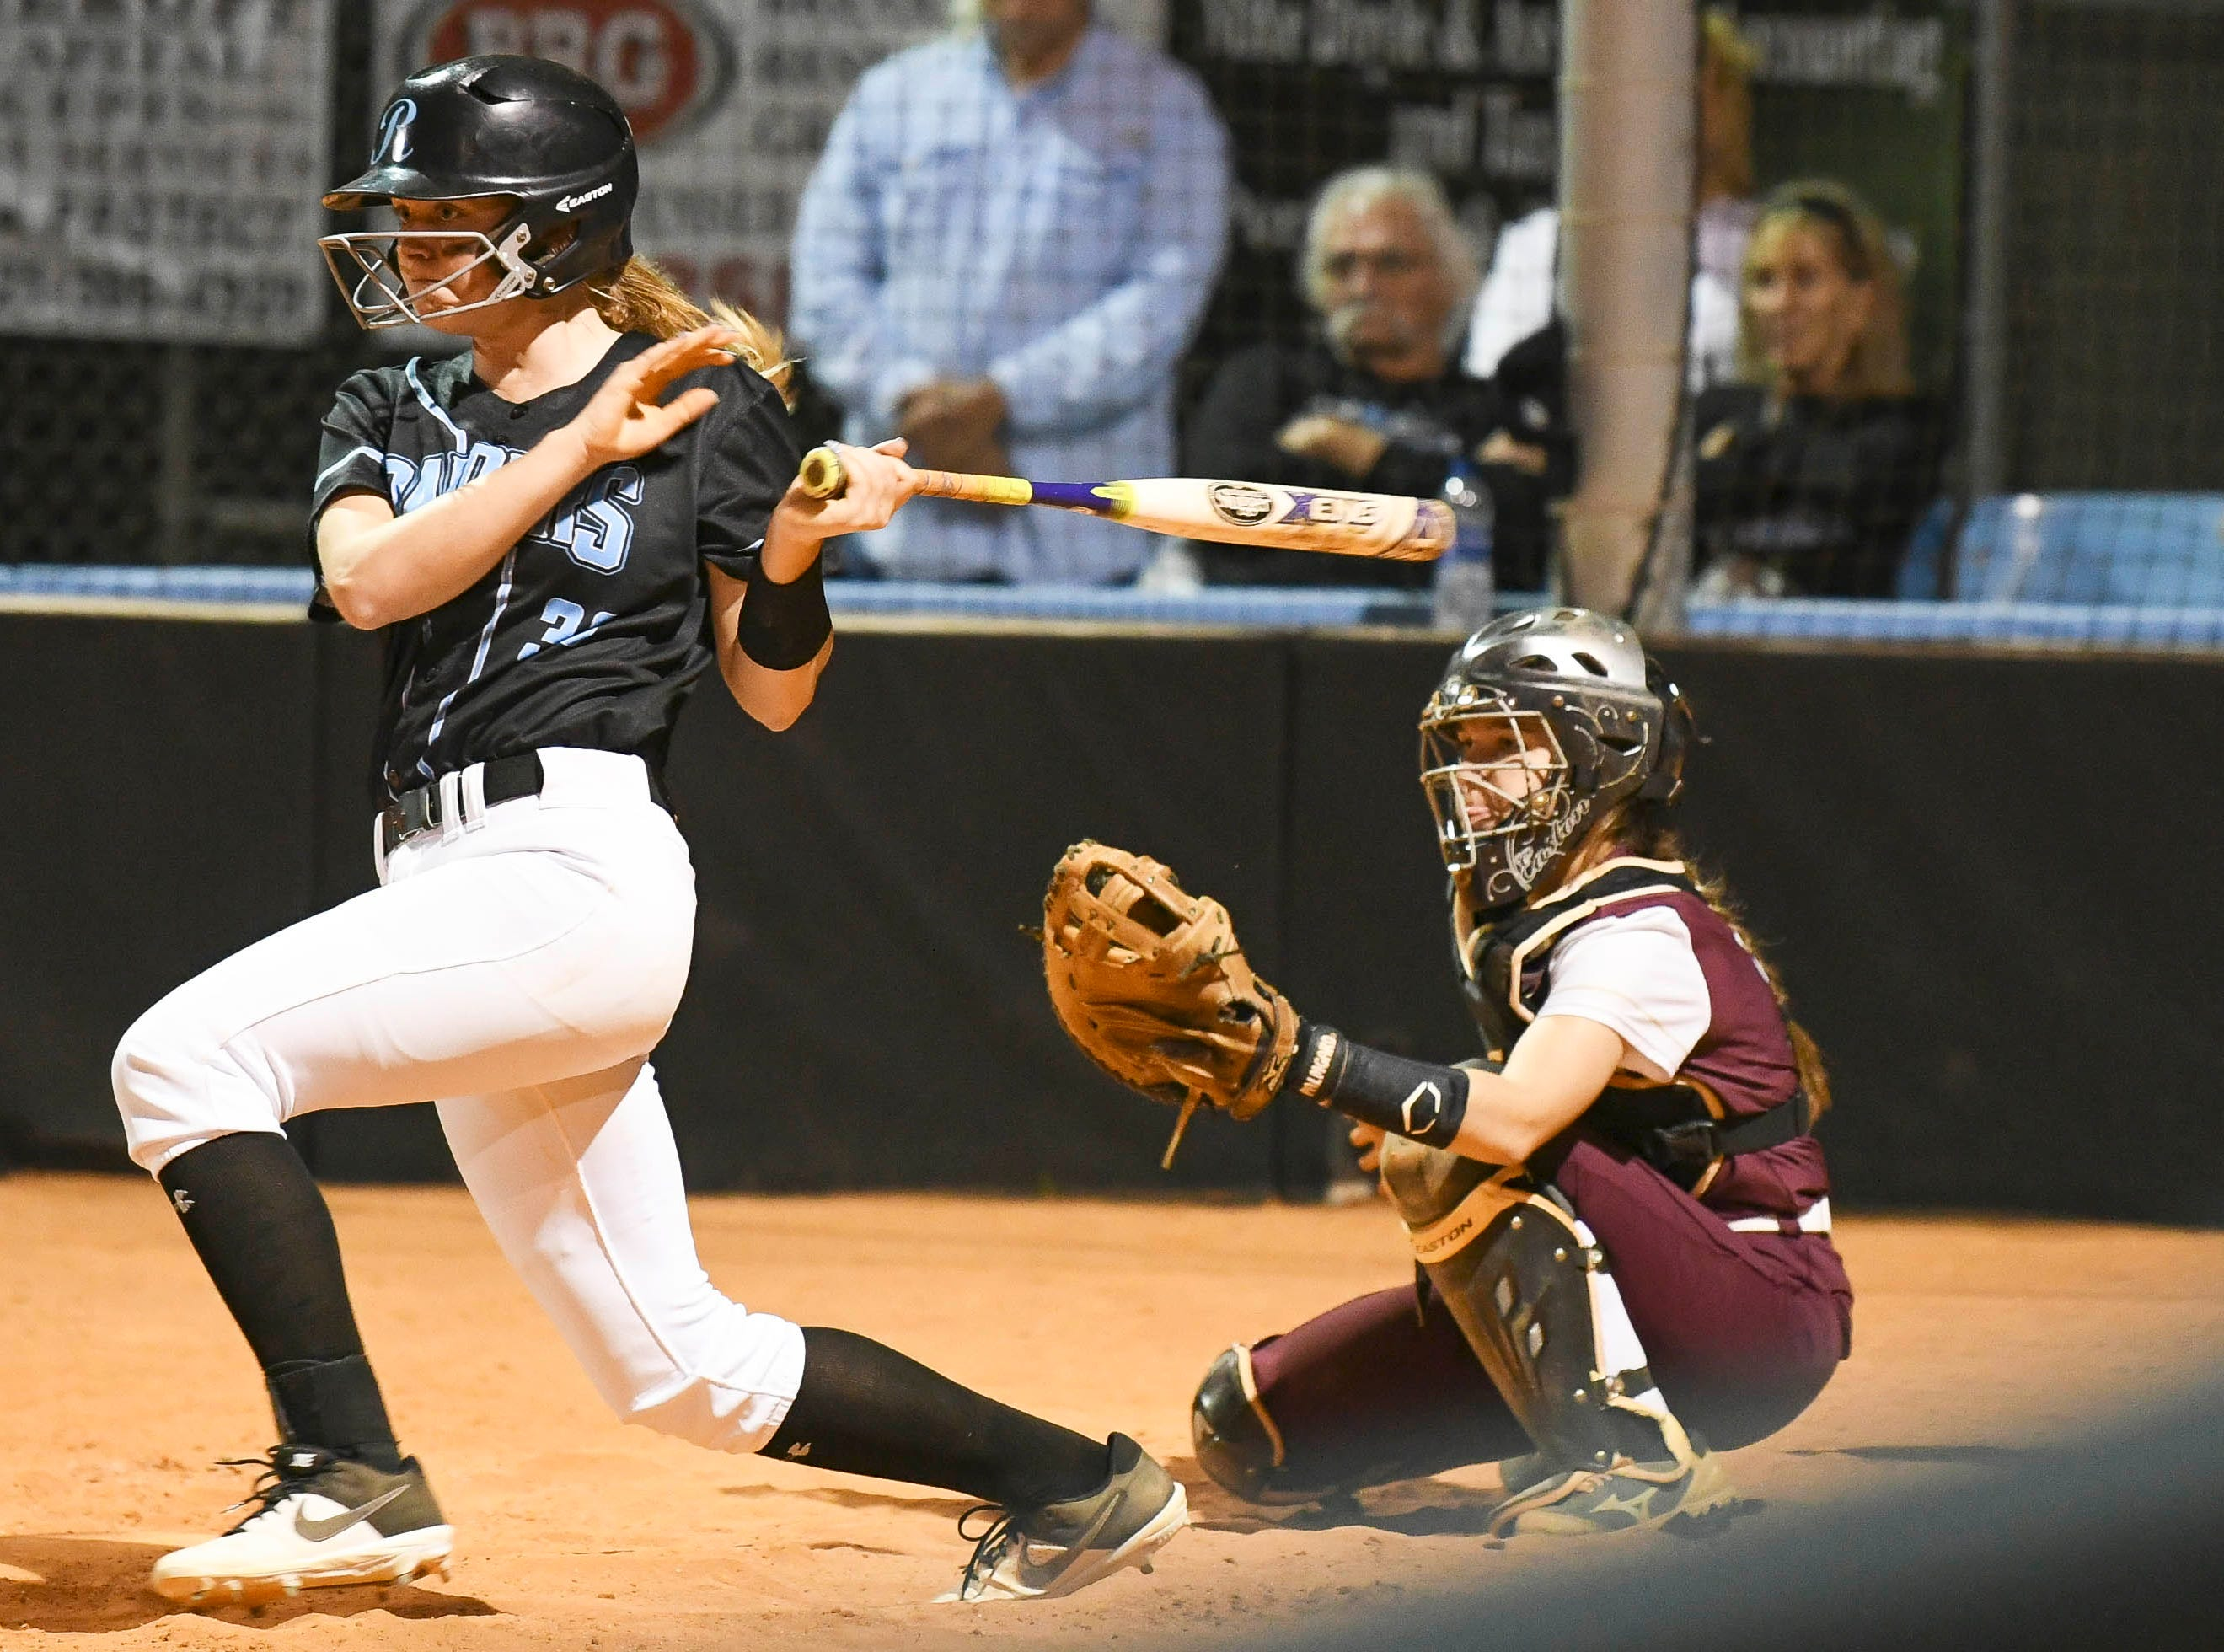 Haley Day of Rockledge puts the ball in play during Wednesday's game in Rockledge